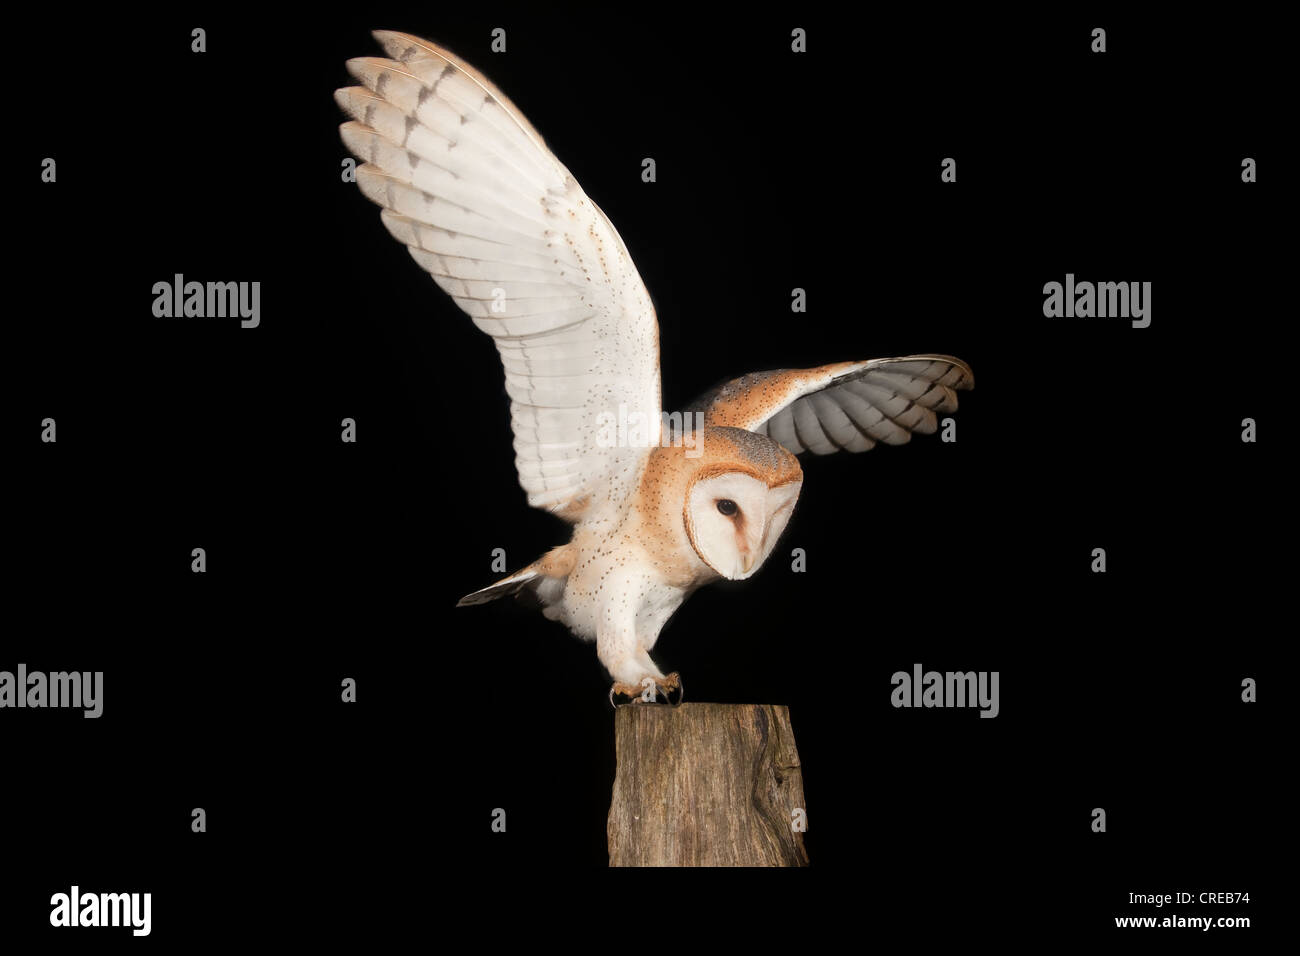 Barn Owl (Tyto alba) with a mouse on a fence post, Volcanic Eifel, Rhineland-Palatinate, Germany, Europe - Stock Image